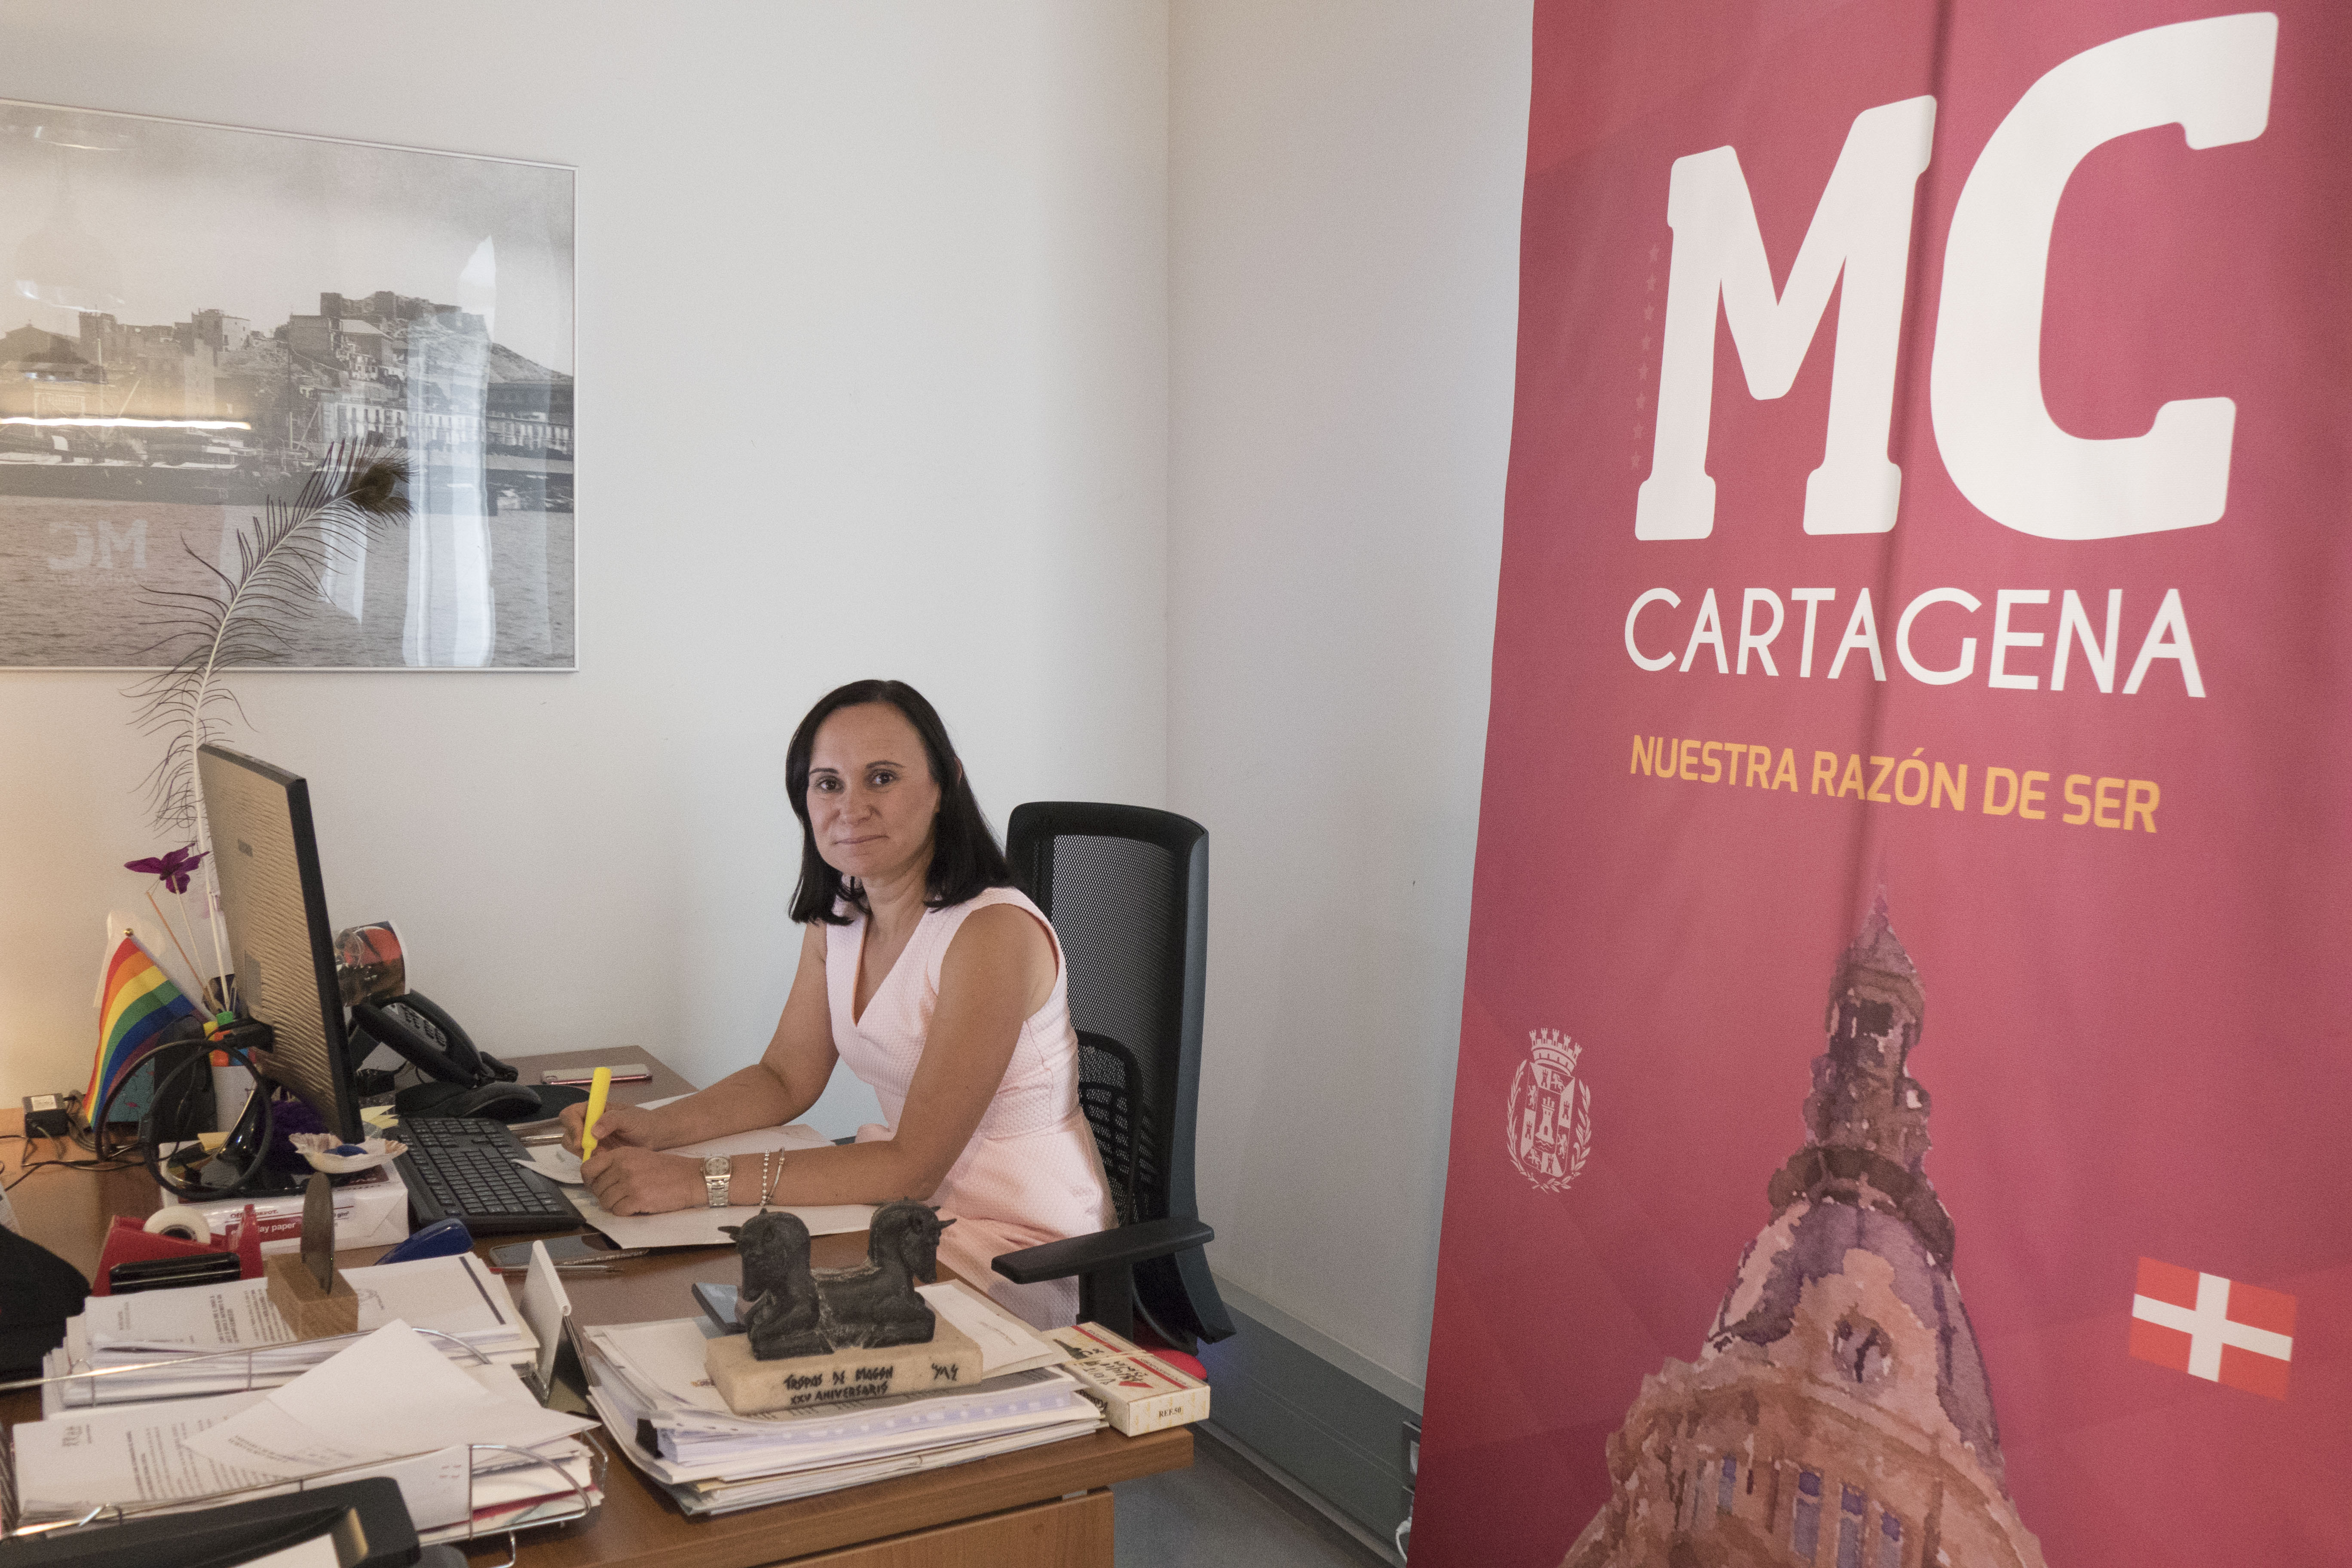 Isabel García. MC Cartagena